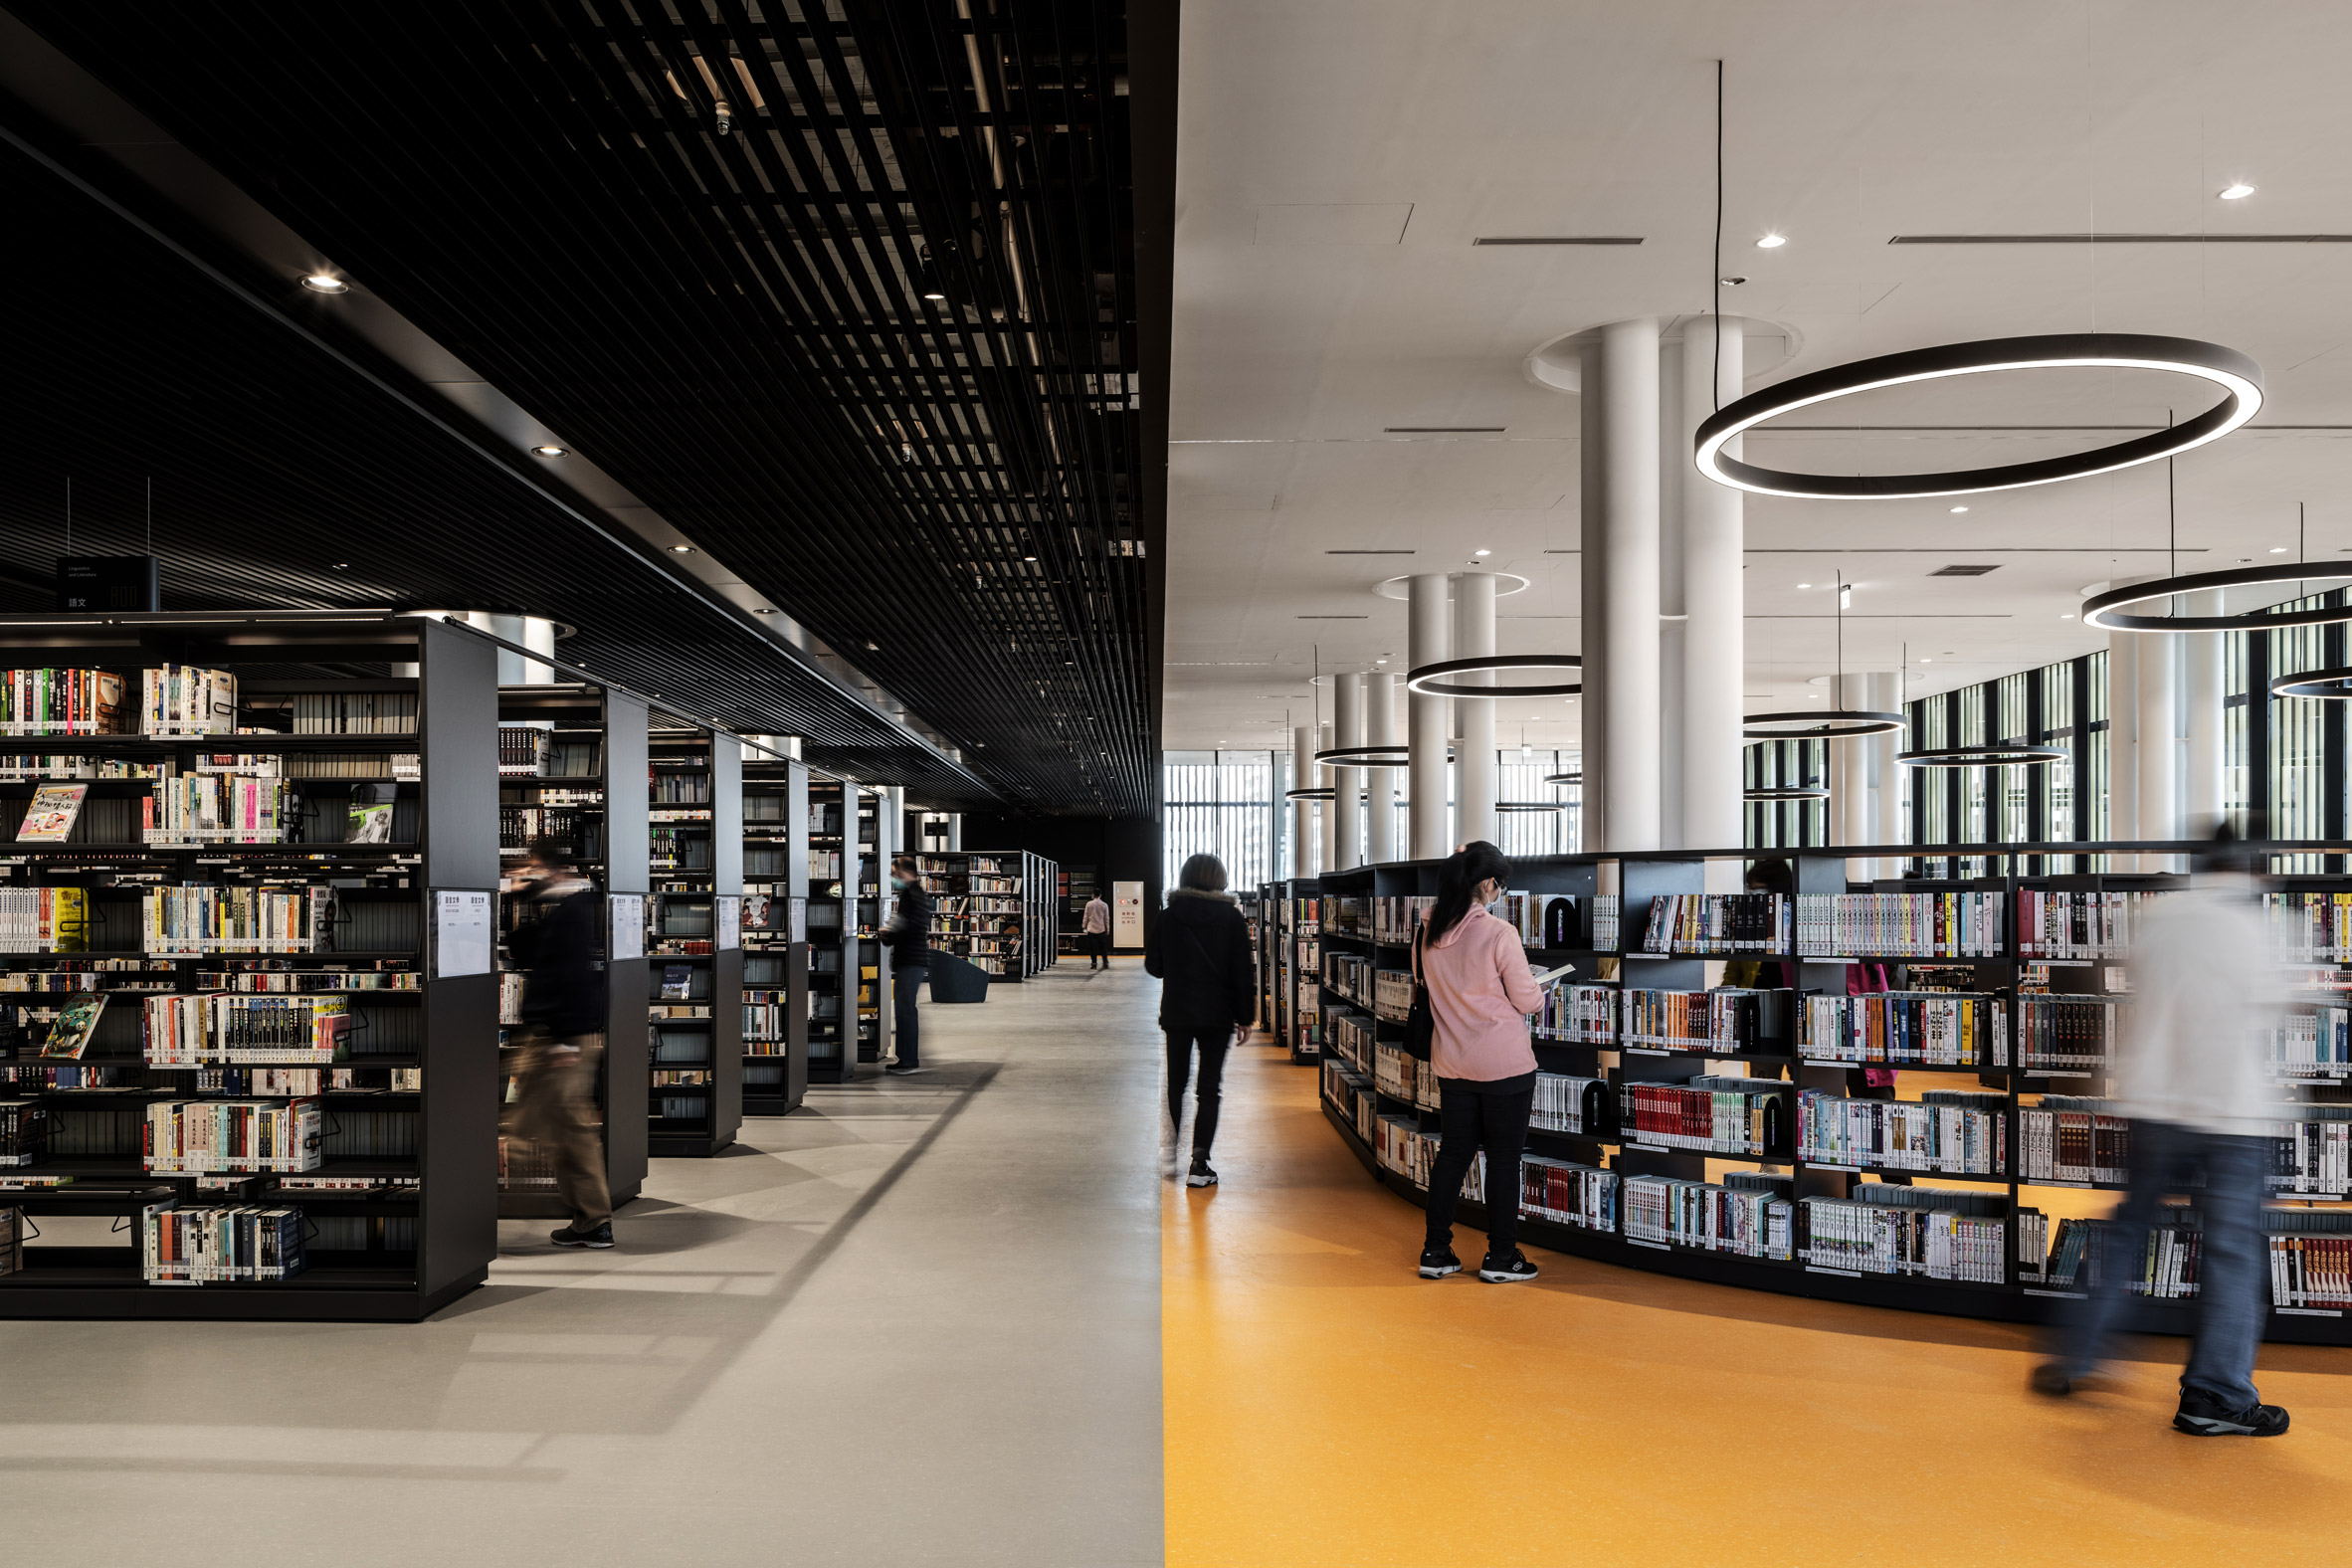 A library with a contrasting yellow and black interiors